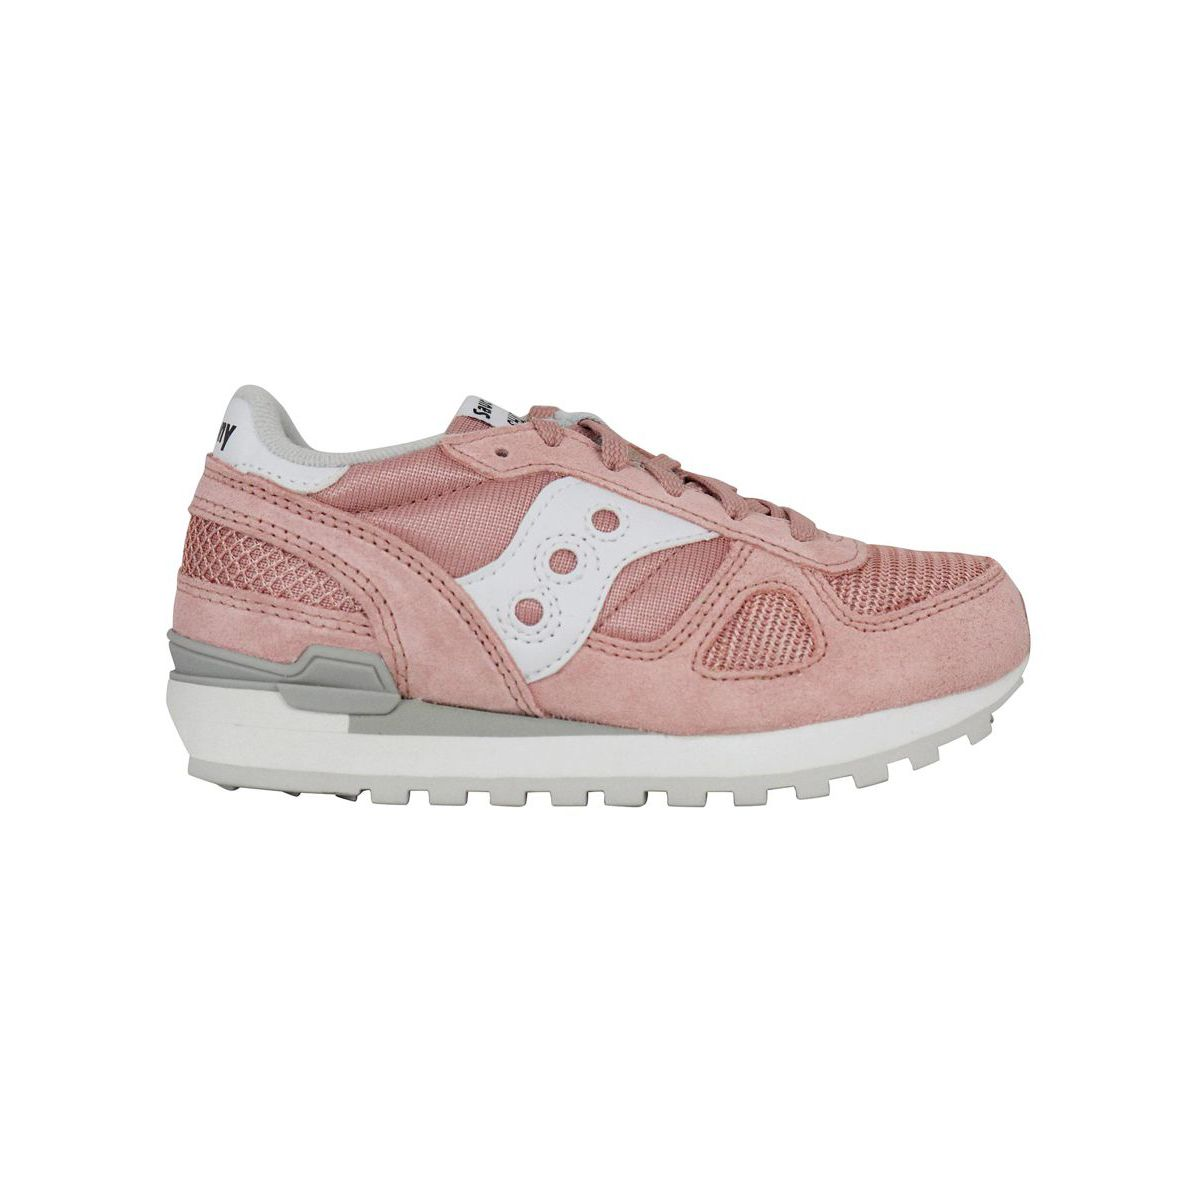 Sneakers SK161570 SHADOW Pink / white Saucony